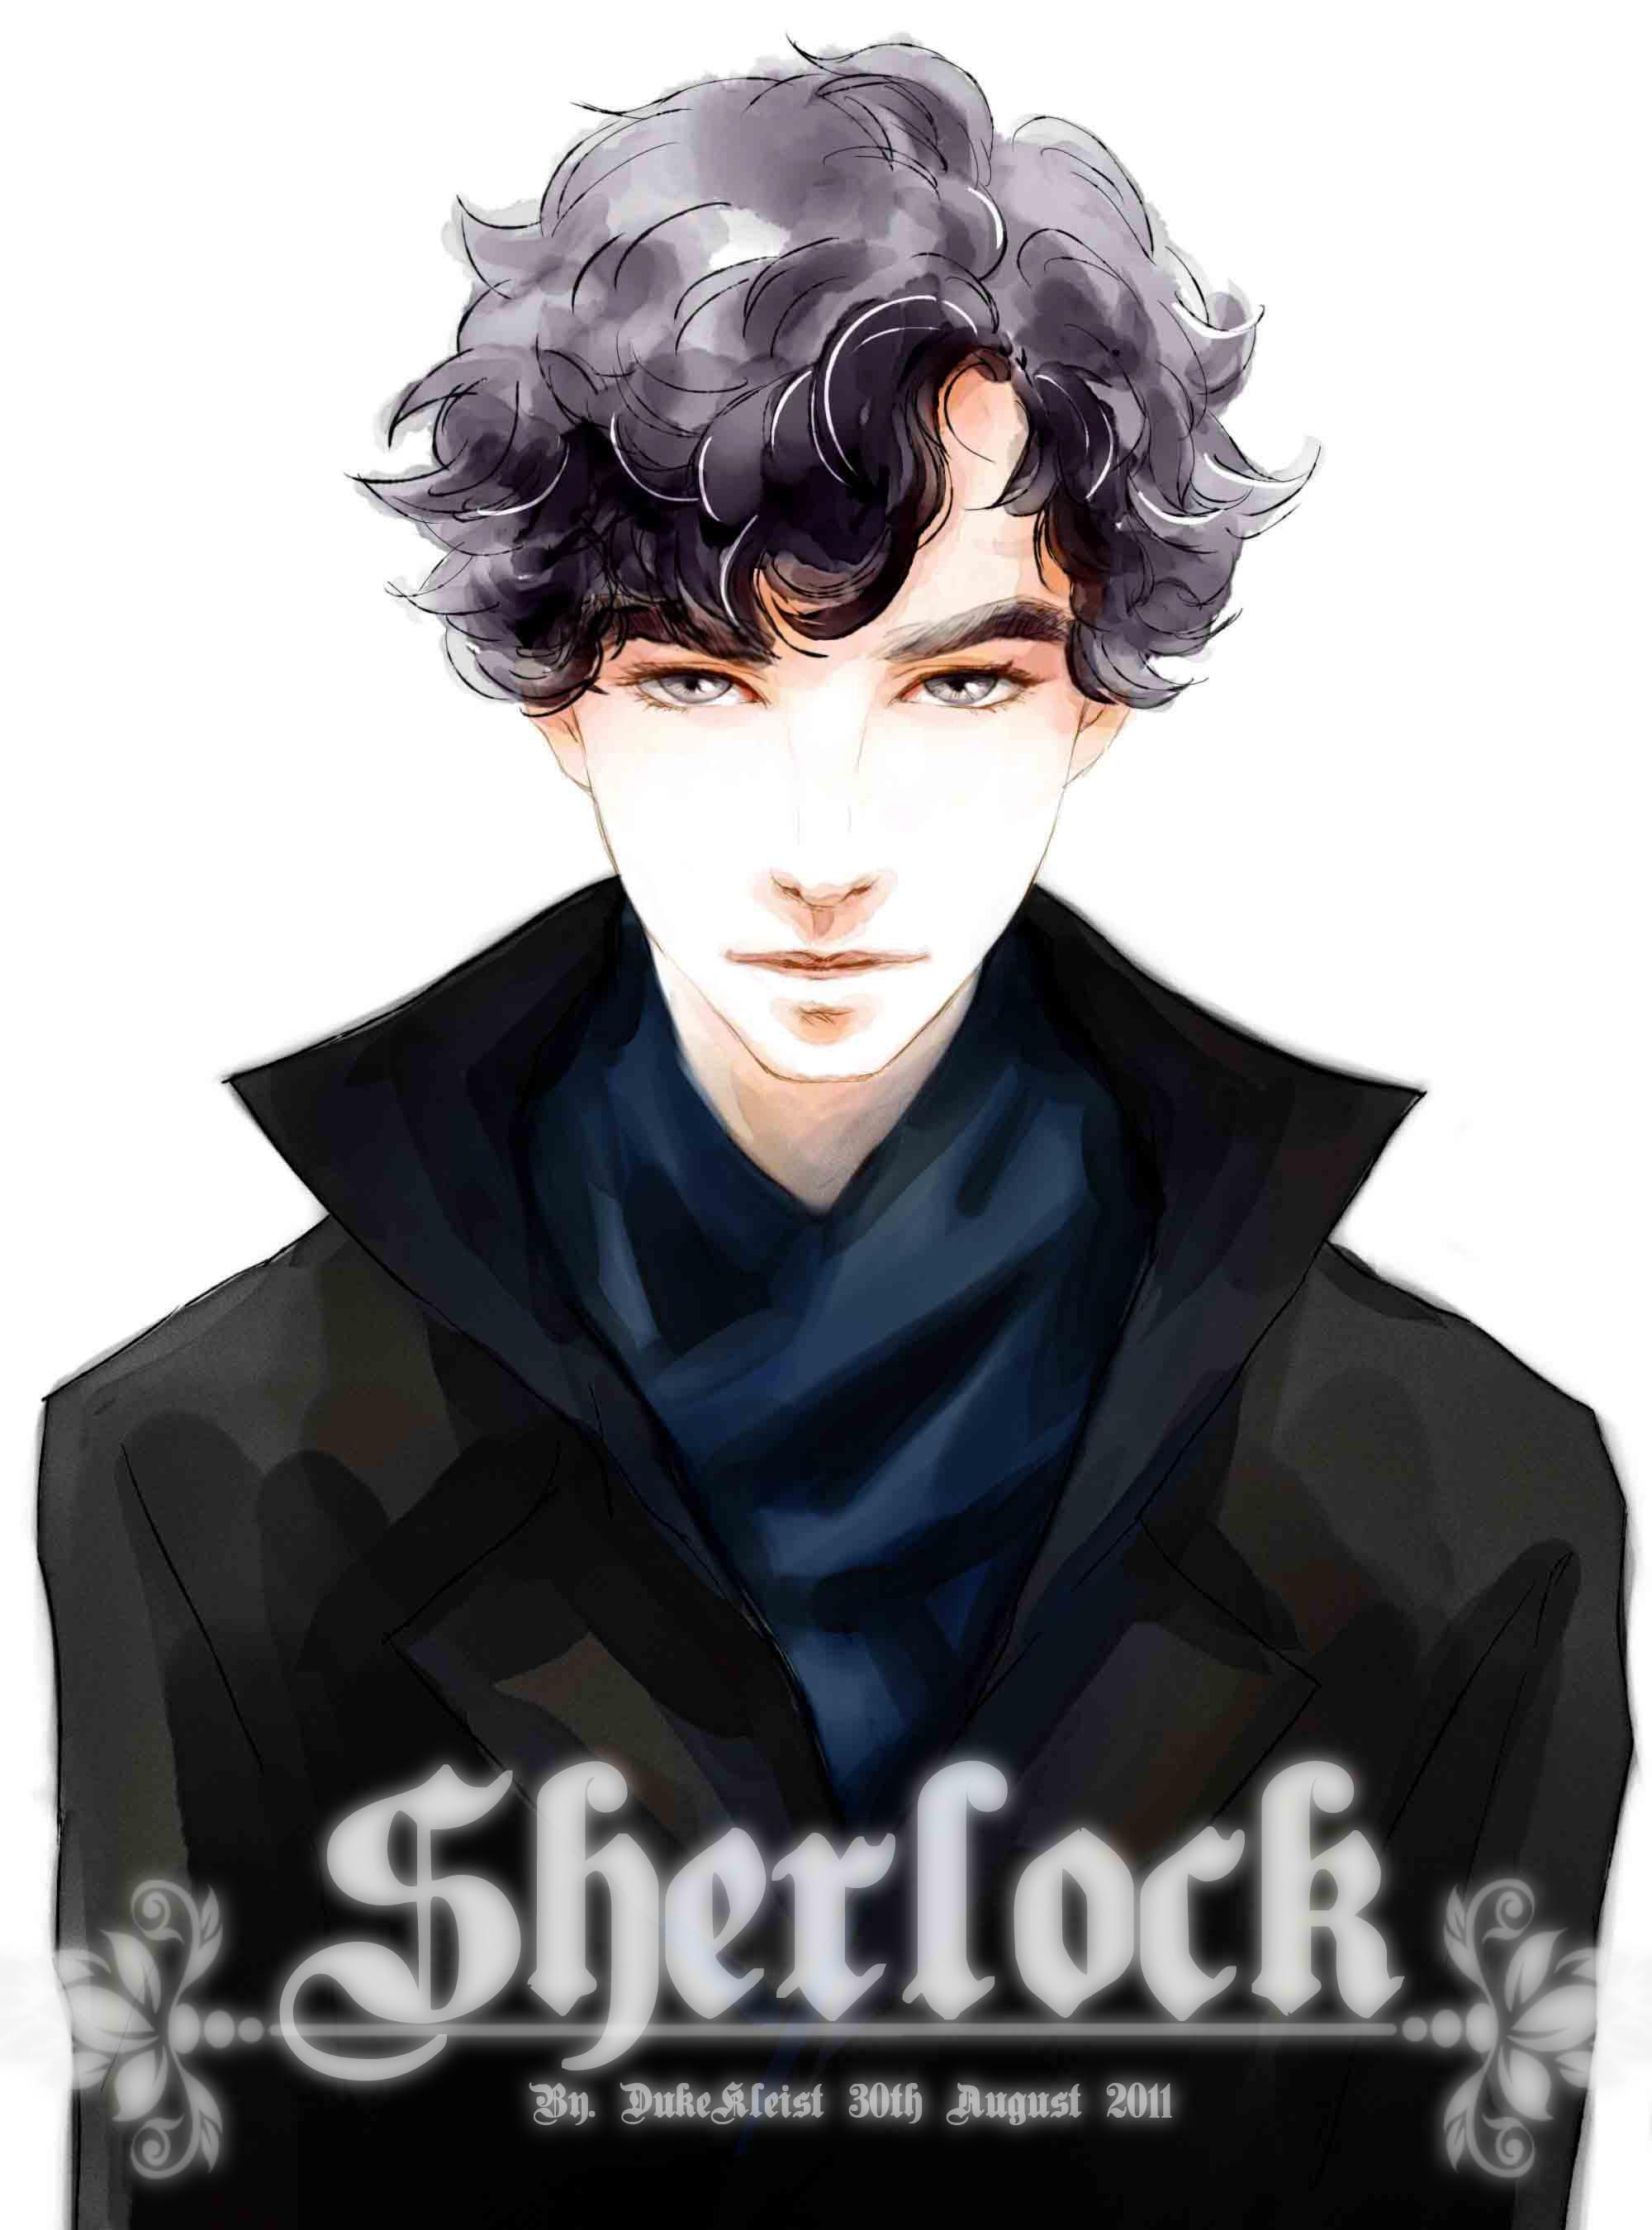 character of sherlock holmes The fourth series of the fantastic bbc show sherlock is set to return at the beginning of 2017 in light of the recently released trailer for the new season of this amazing show, here are some curious facts about the great fictional detective : 1 sherlock holmes has an estimated iq of around 190 in a book called.